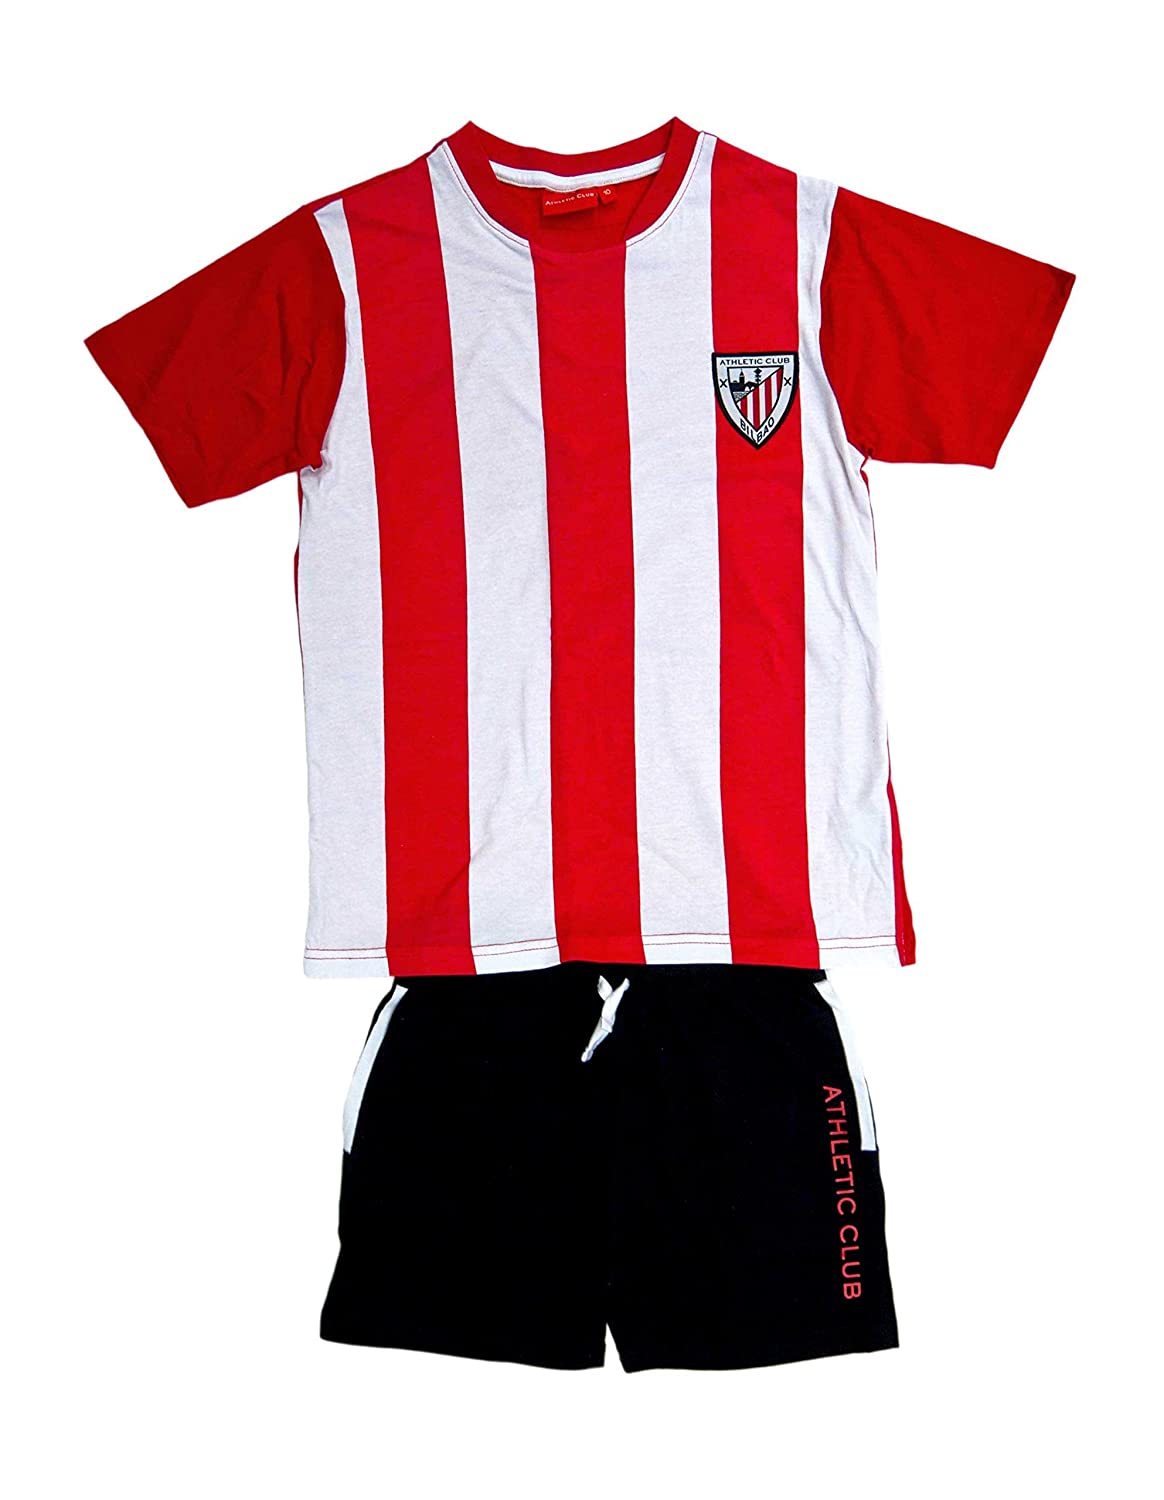 FUTBOL Pijama niño Athletic Club Bilbao - 12: Amazon.es: Deportes ...